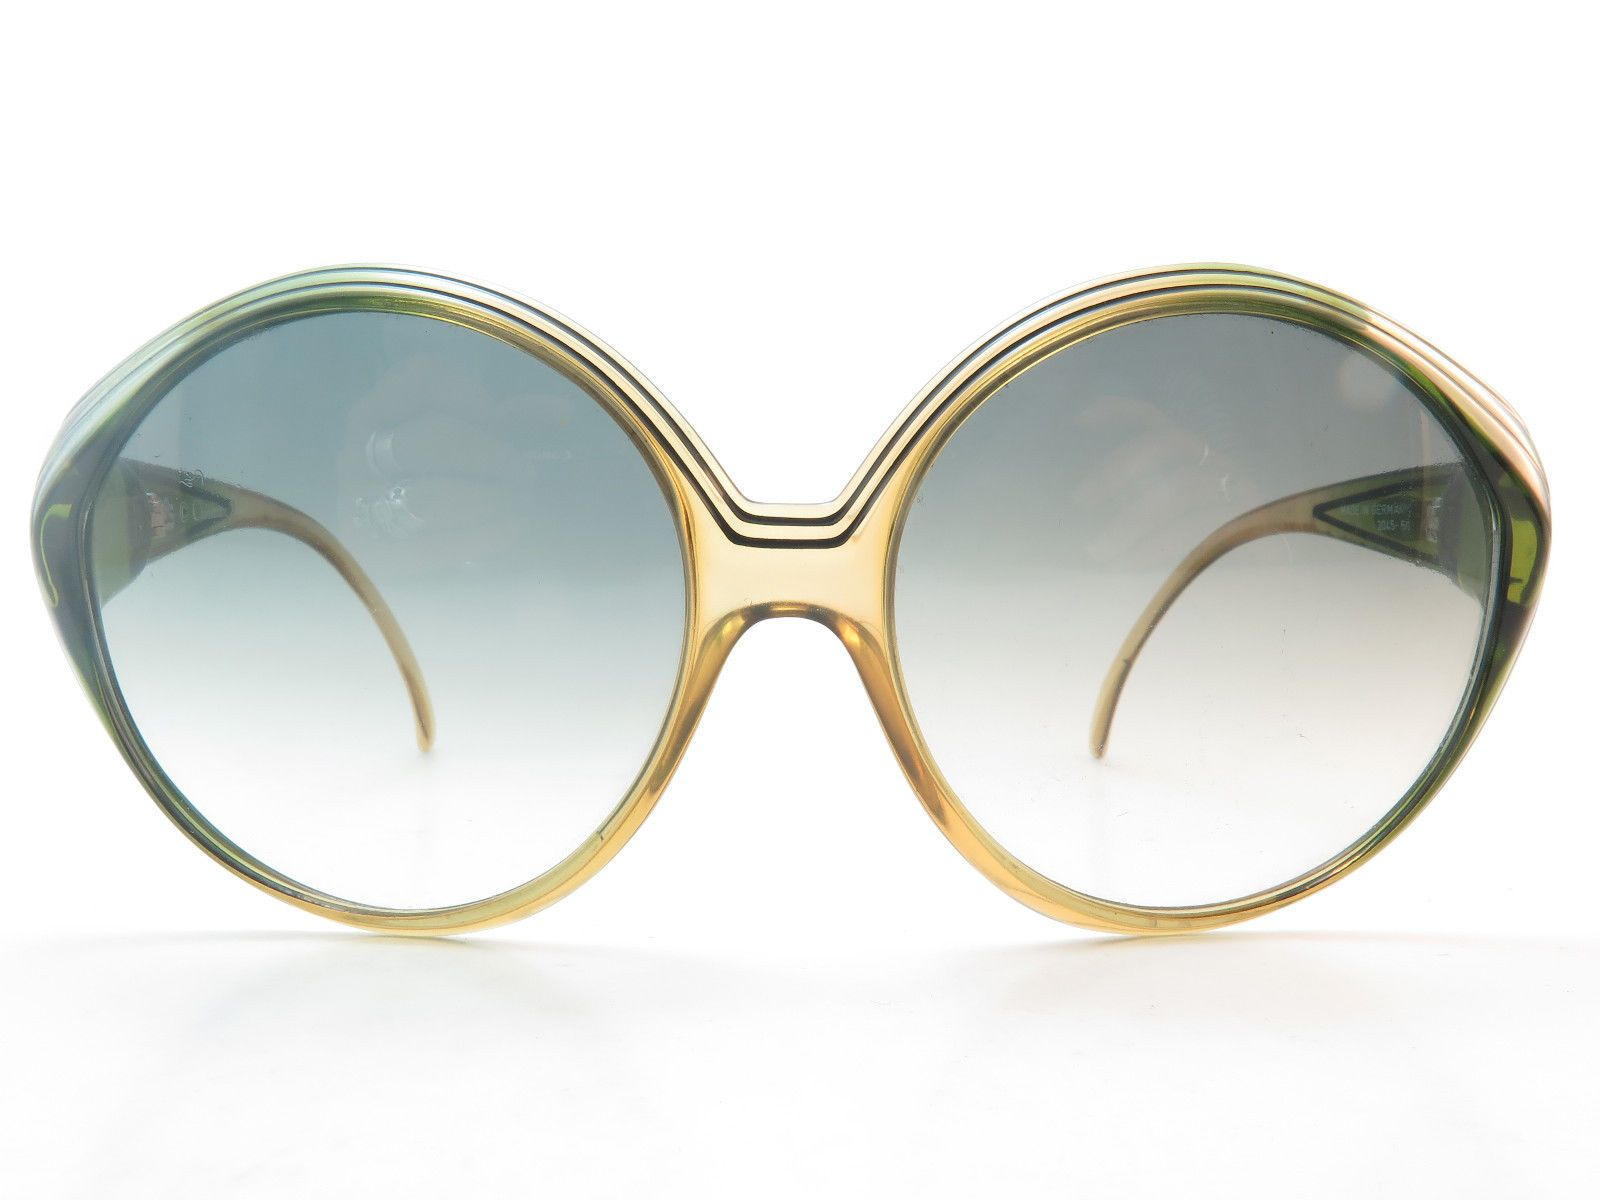 f9298c1a18552b Vintage 70s Christian Dior Sunglasses Green Mod 2045 Col 60 Made in Germany    eBay